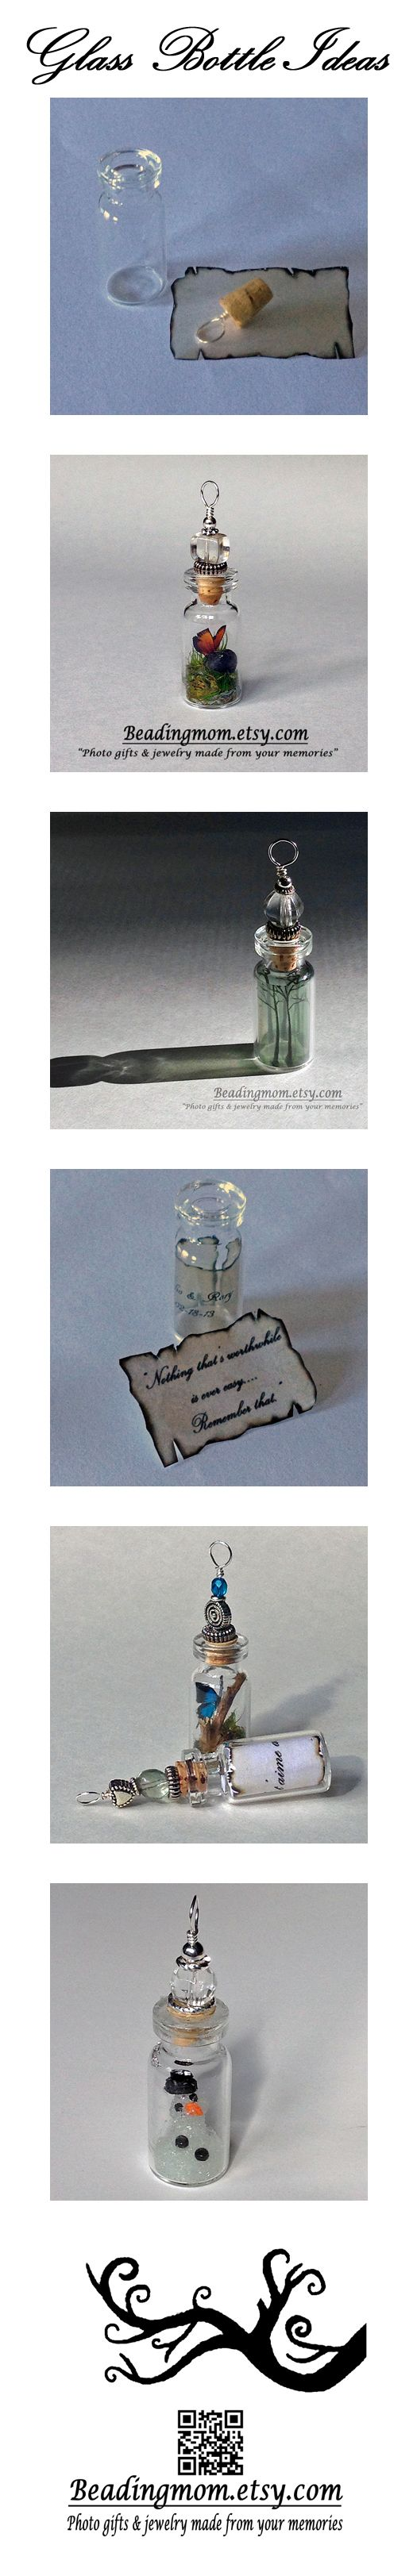 Glass bottle pendant ideas for terrarium, message in a bottle, and DIY ideas, handmade on etsy by beadingmom